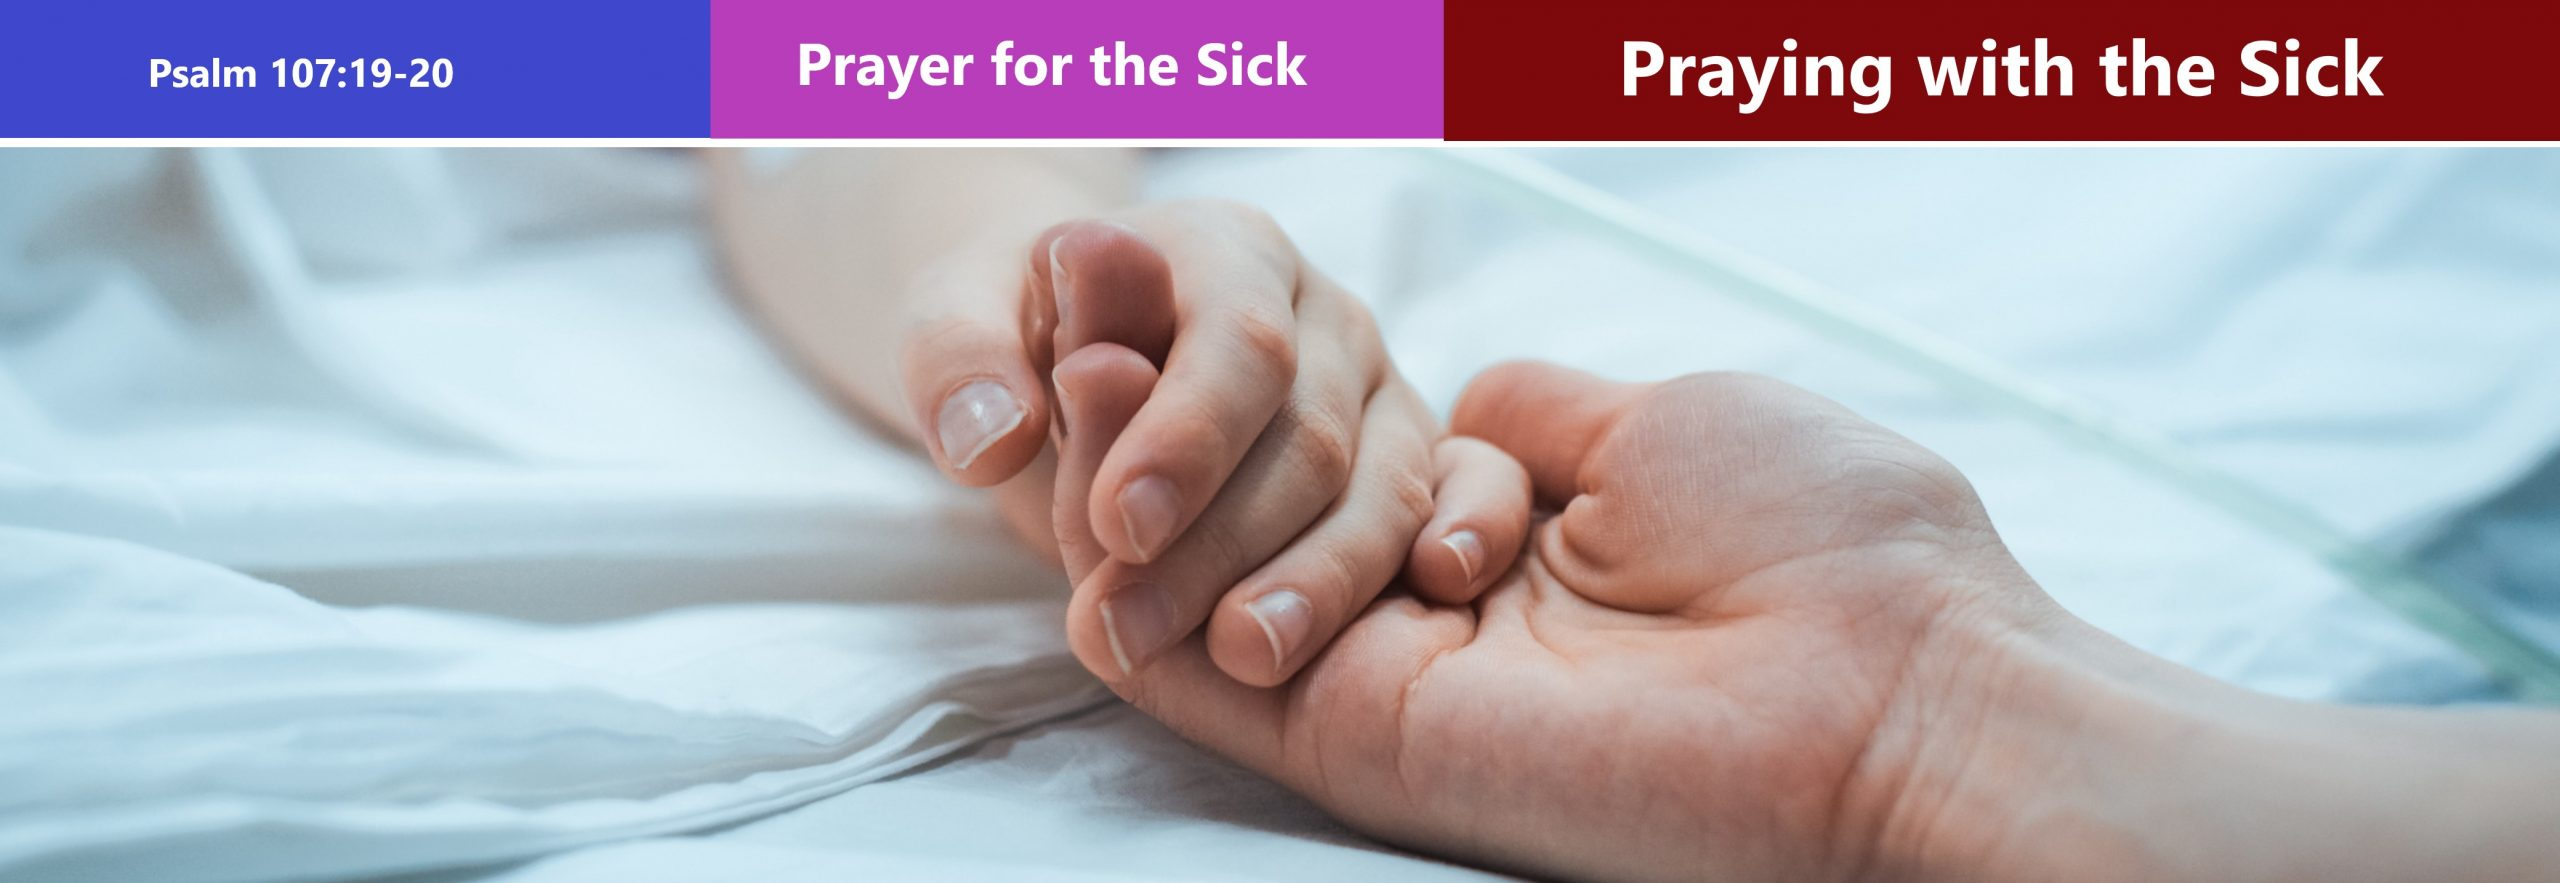 PRAYER SERVICE FOR THE SICK